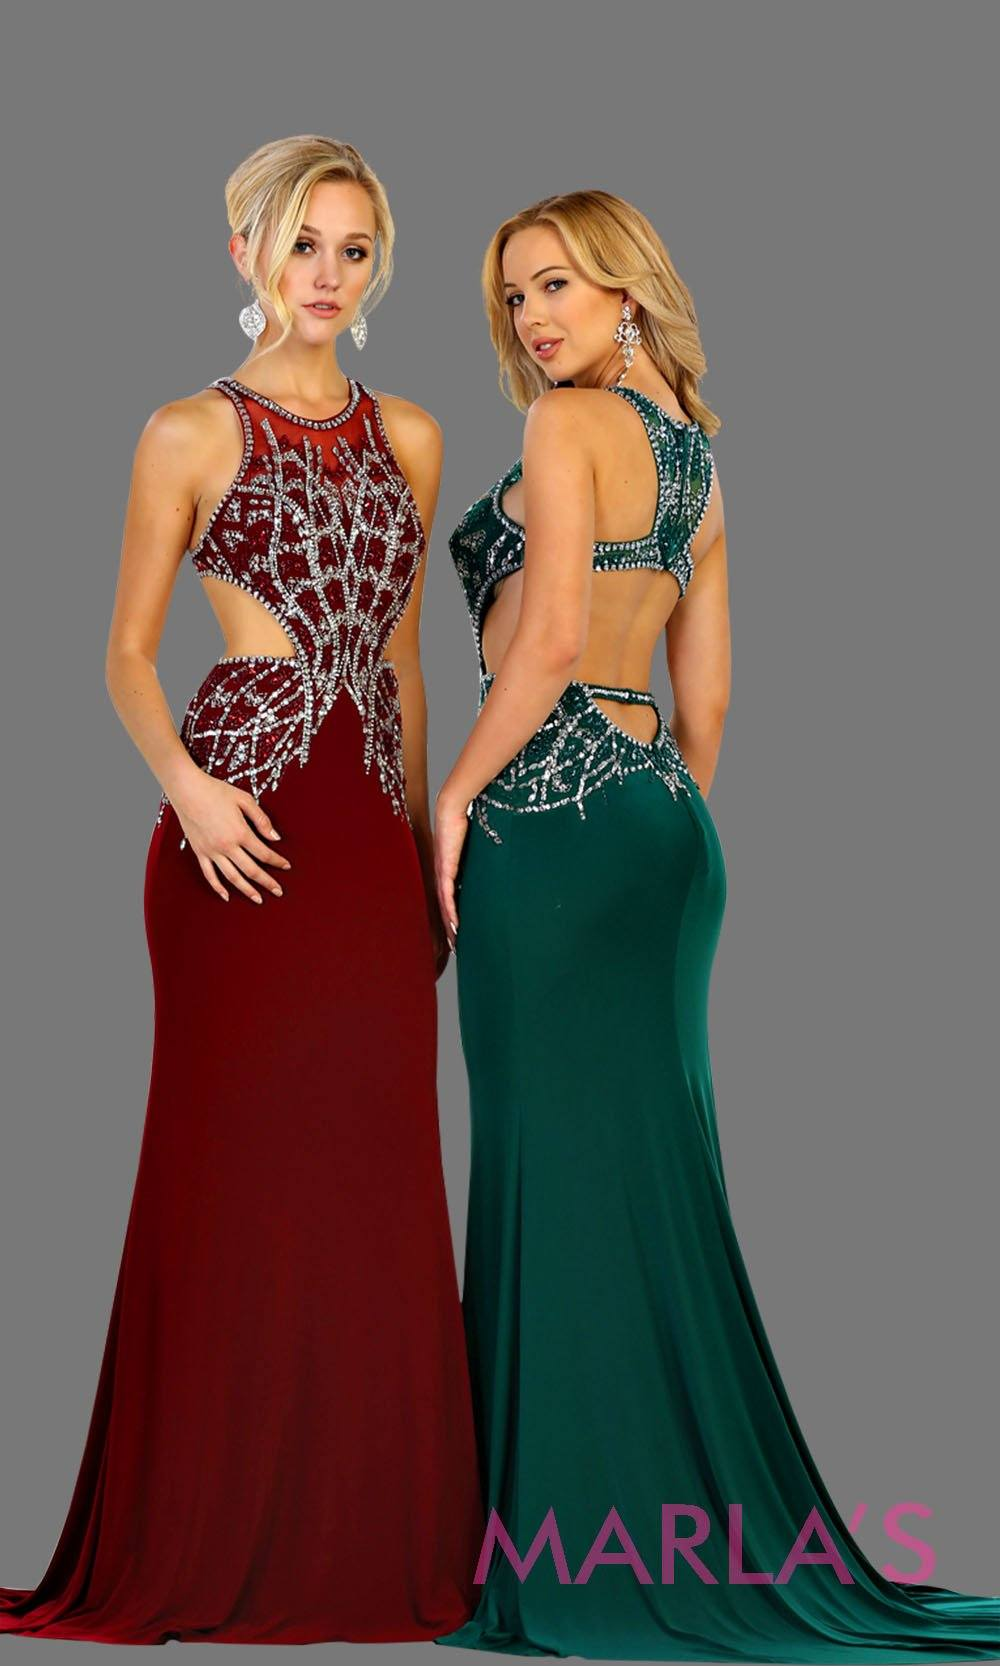 Long dark green high neck beaded dress with open back. Perfect hunter green or emerald gown for prom, gala, formal wedding guest dress, low back gown, sleek and sexy dress.